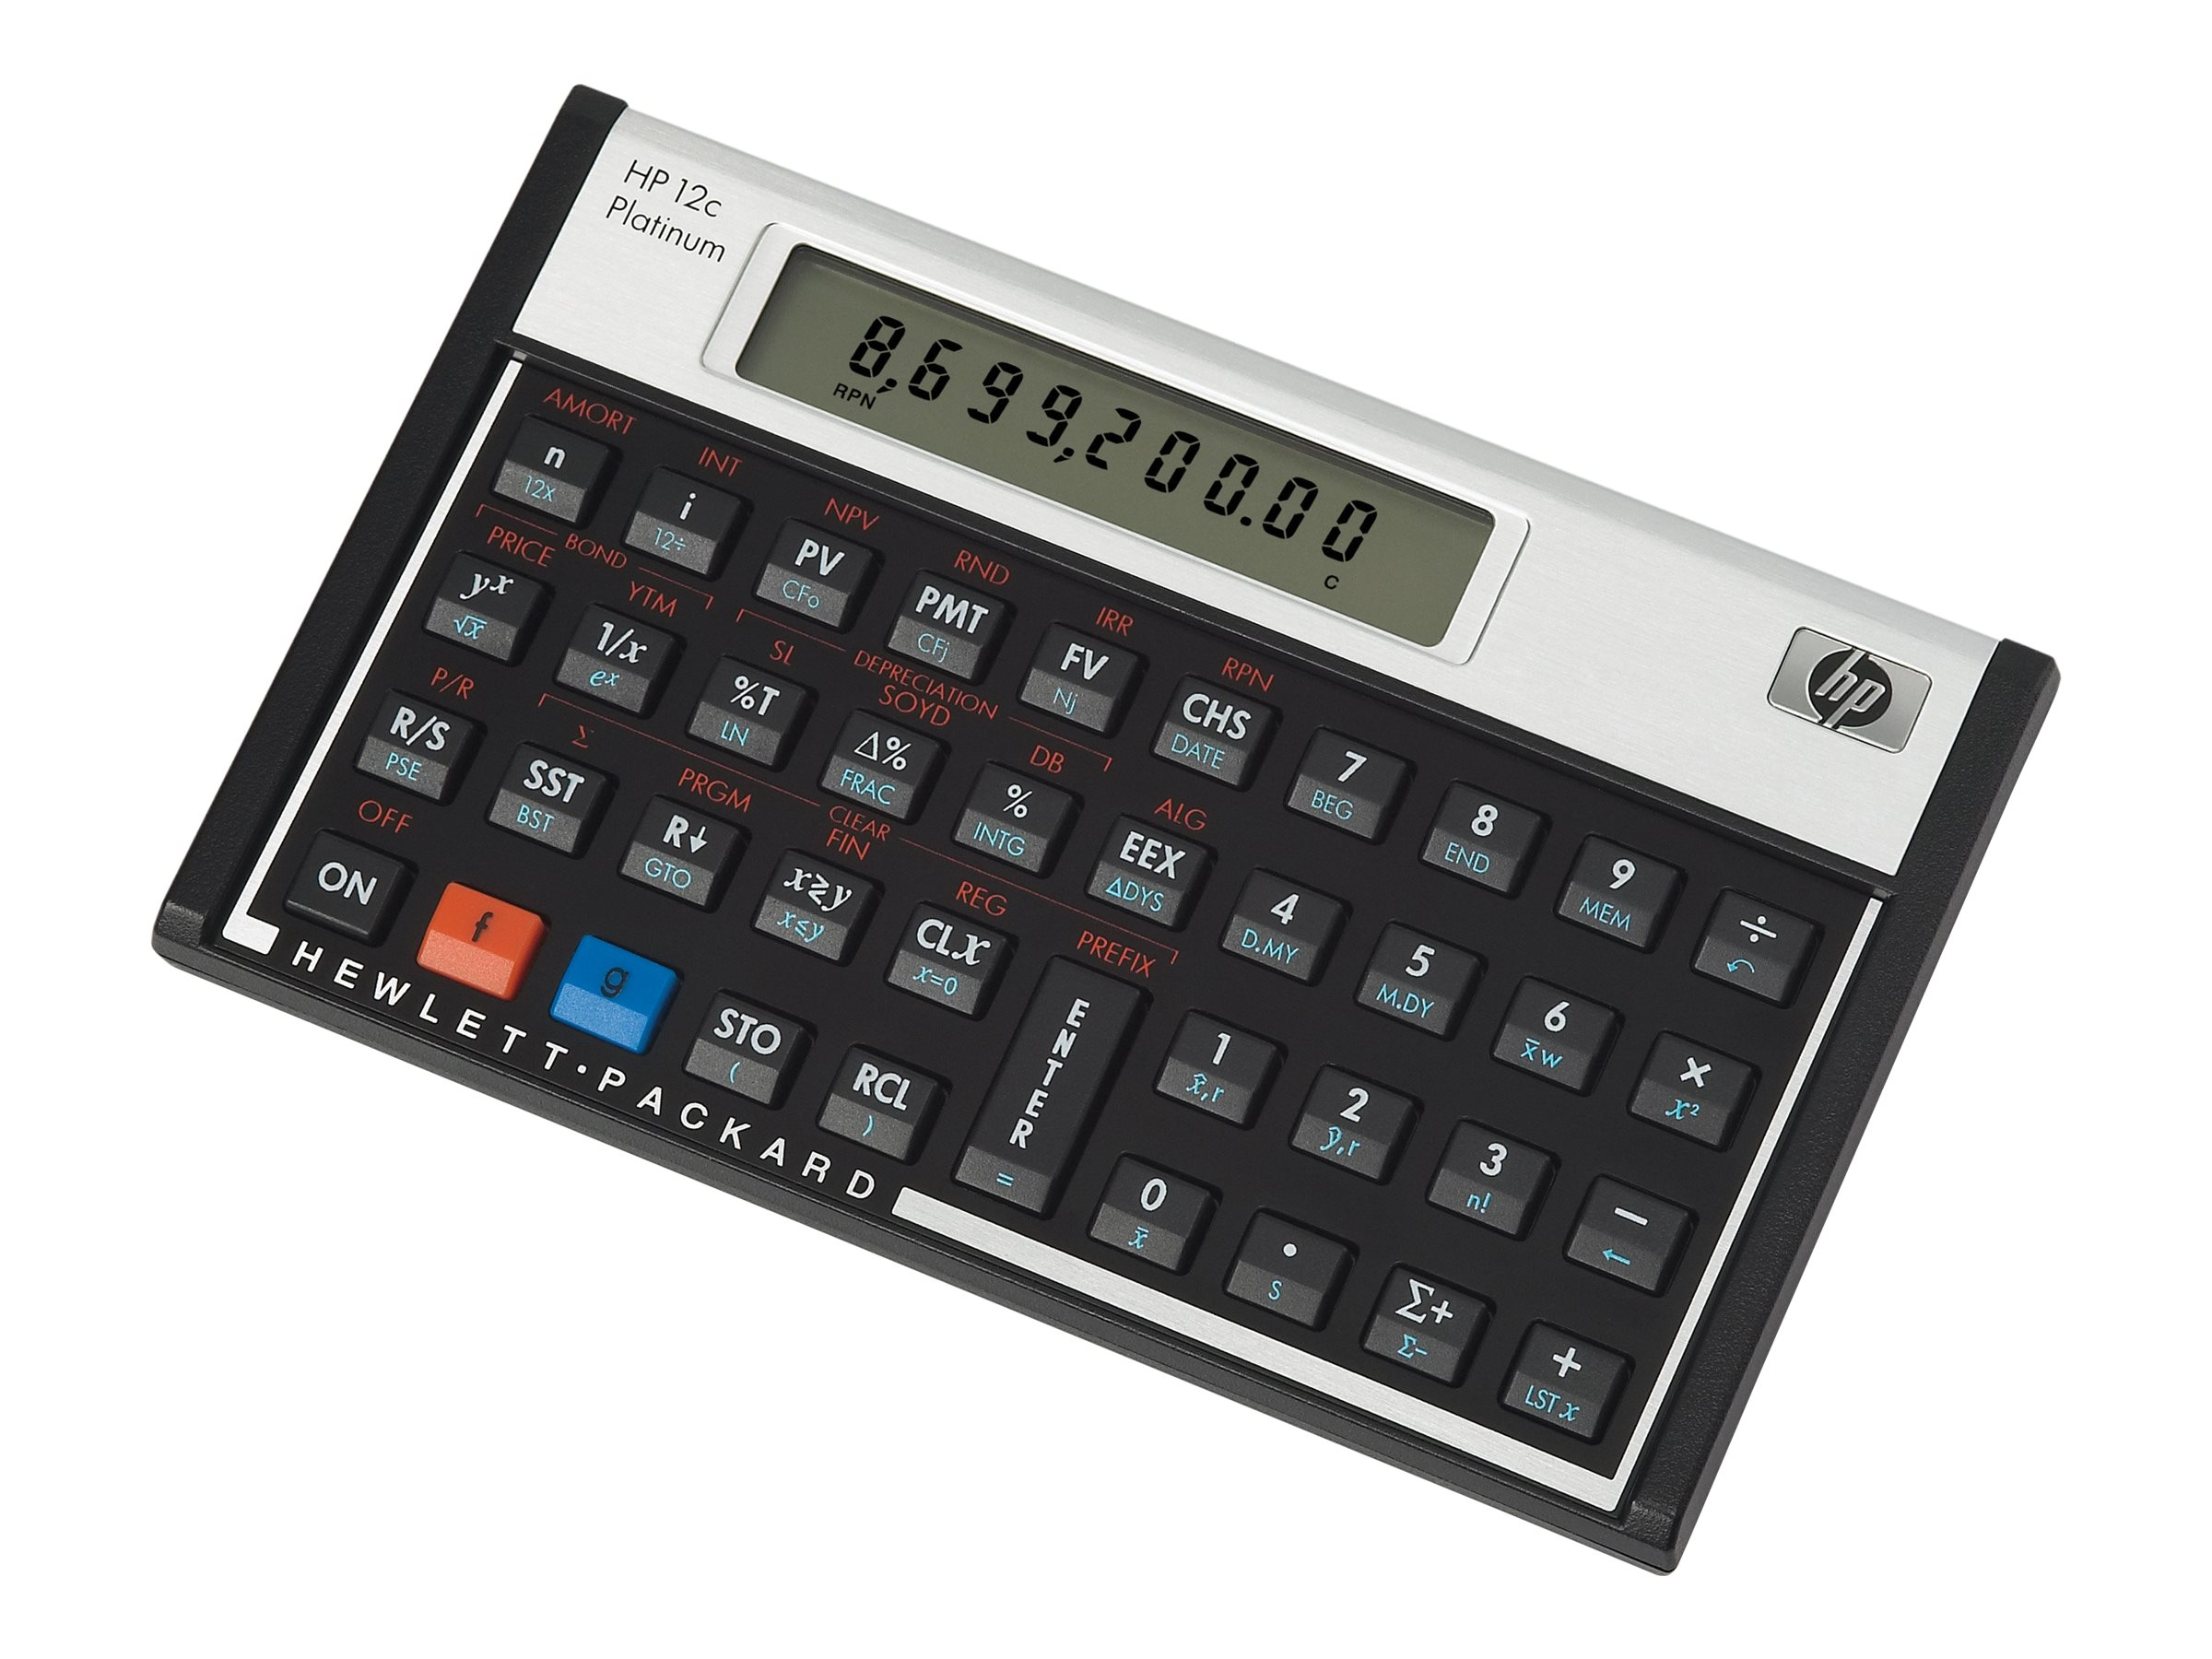 HP HP 12C Platinum Financial Calculator, F2231AA#ABA, 7320357, Calculators